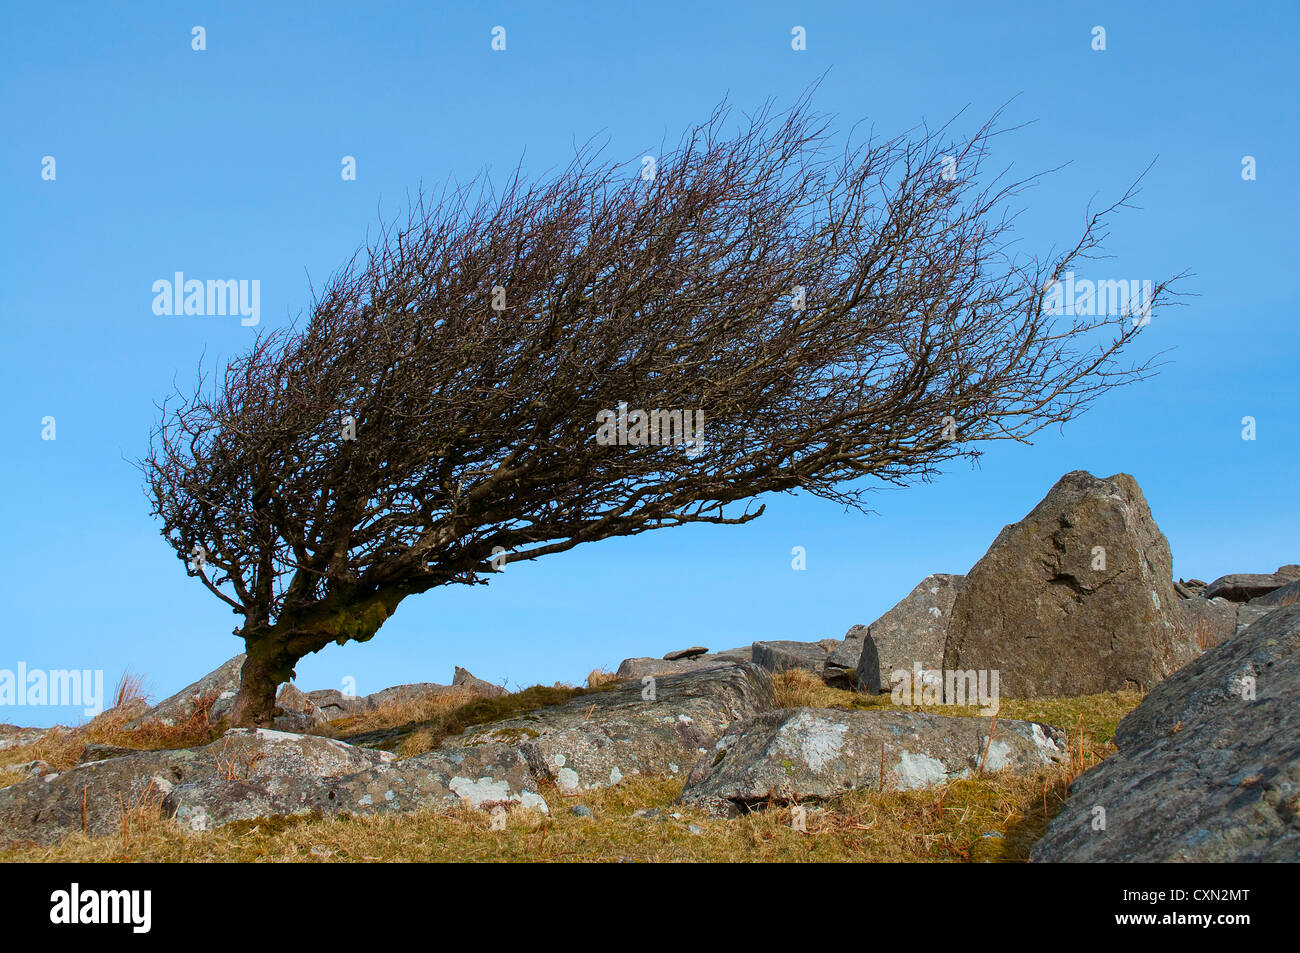 A leafless wind shaped hawthorn tree on bodmin moor in cornwall, uk Stock Photo